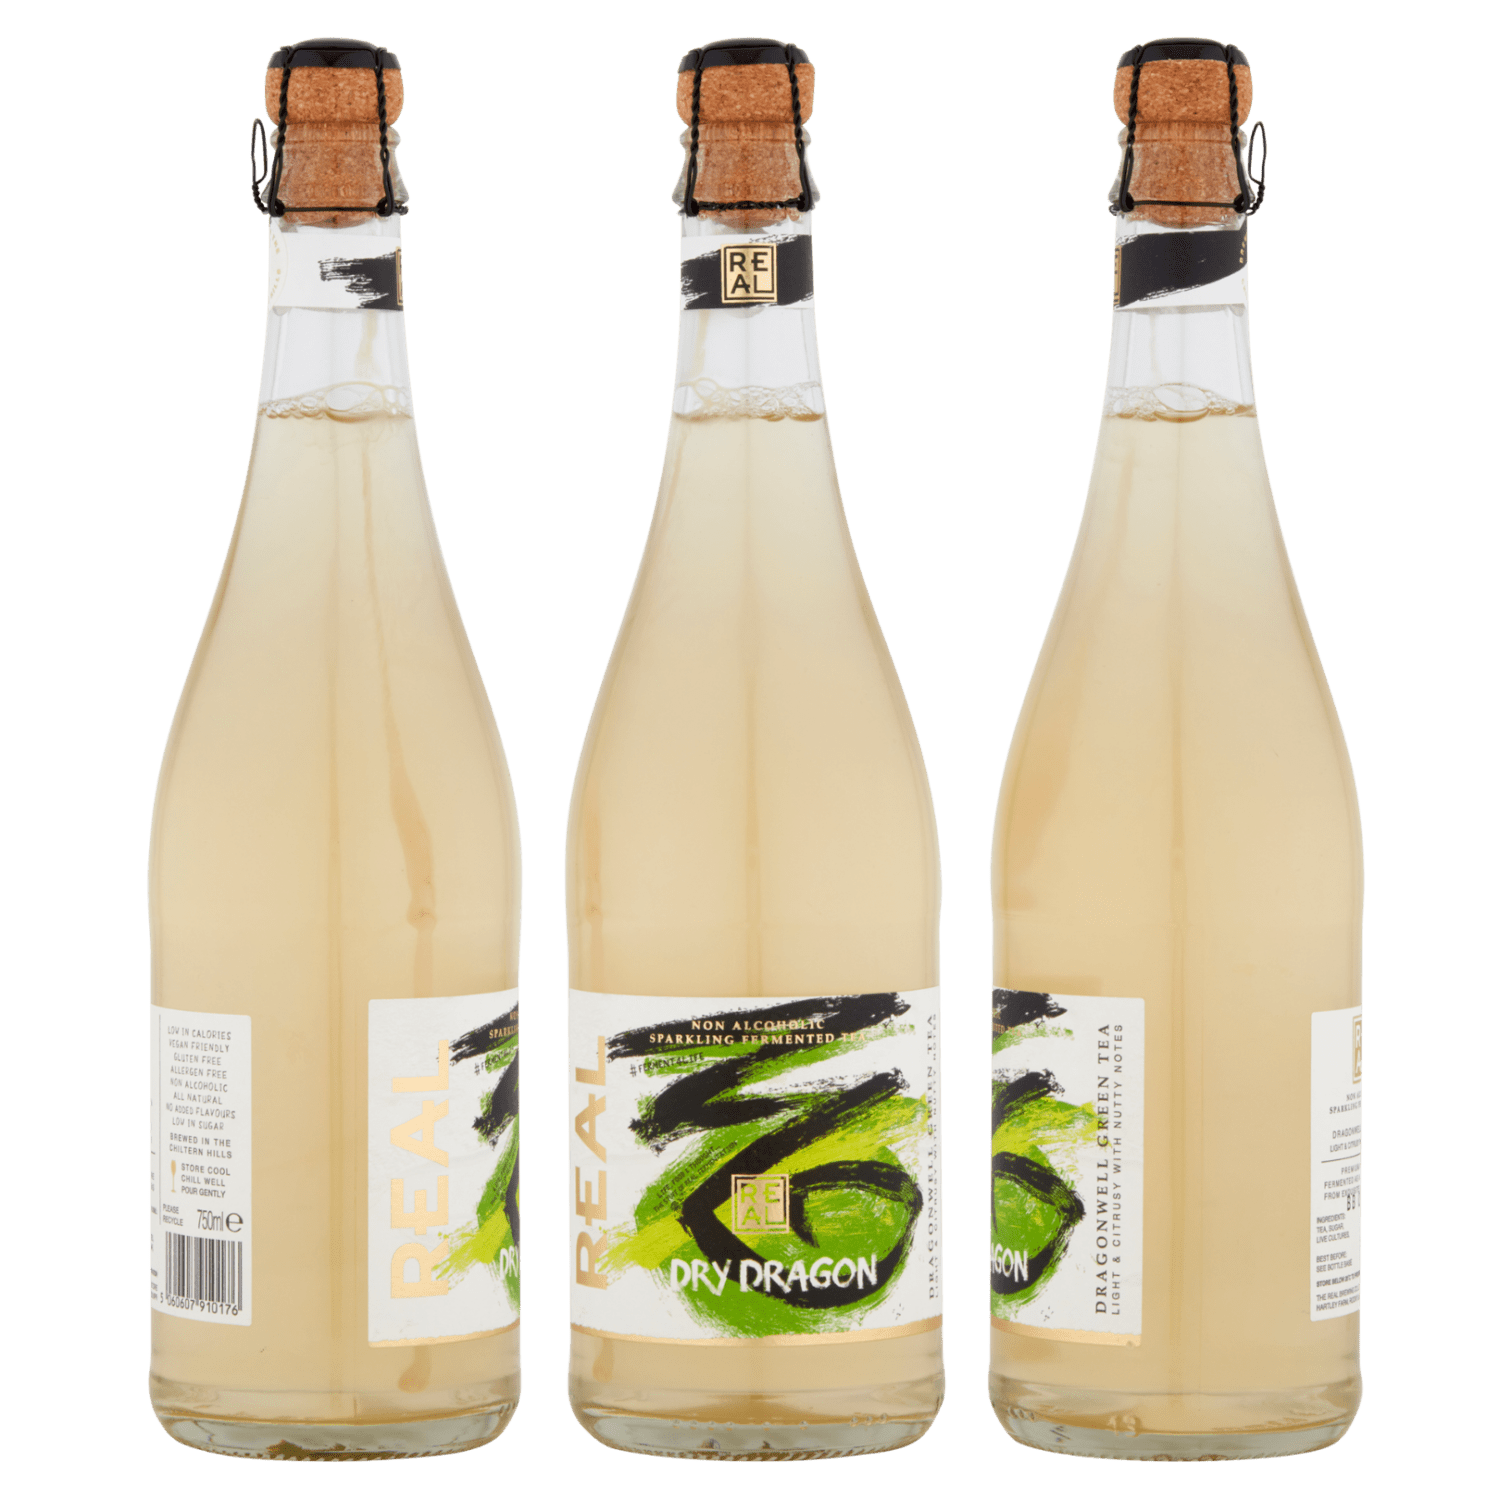 750ml bottles of REAL Kombucha Dry Dragon